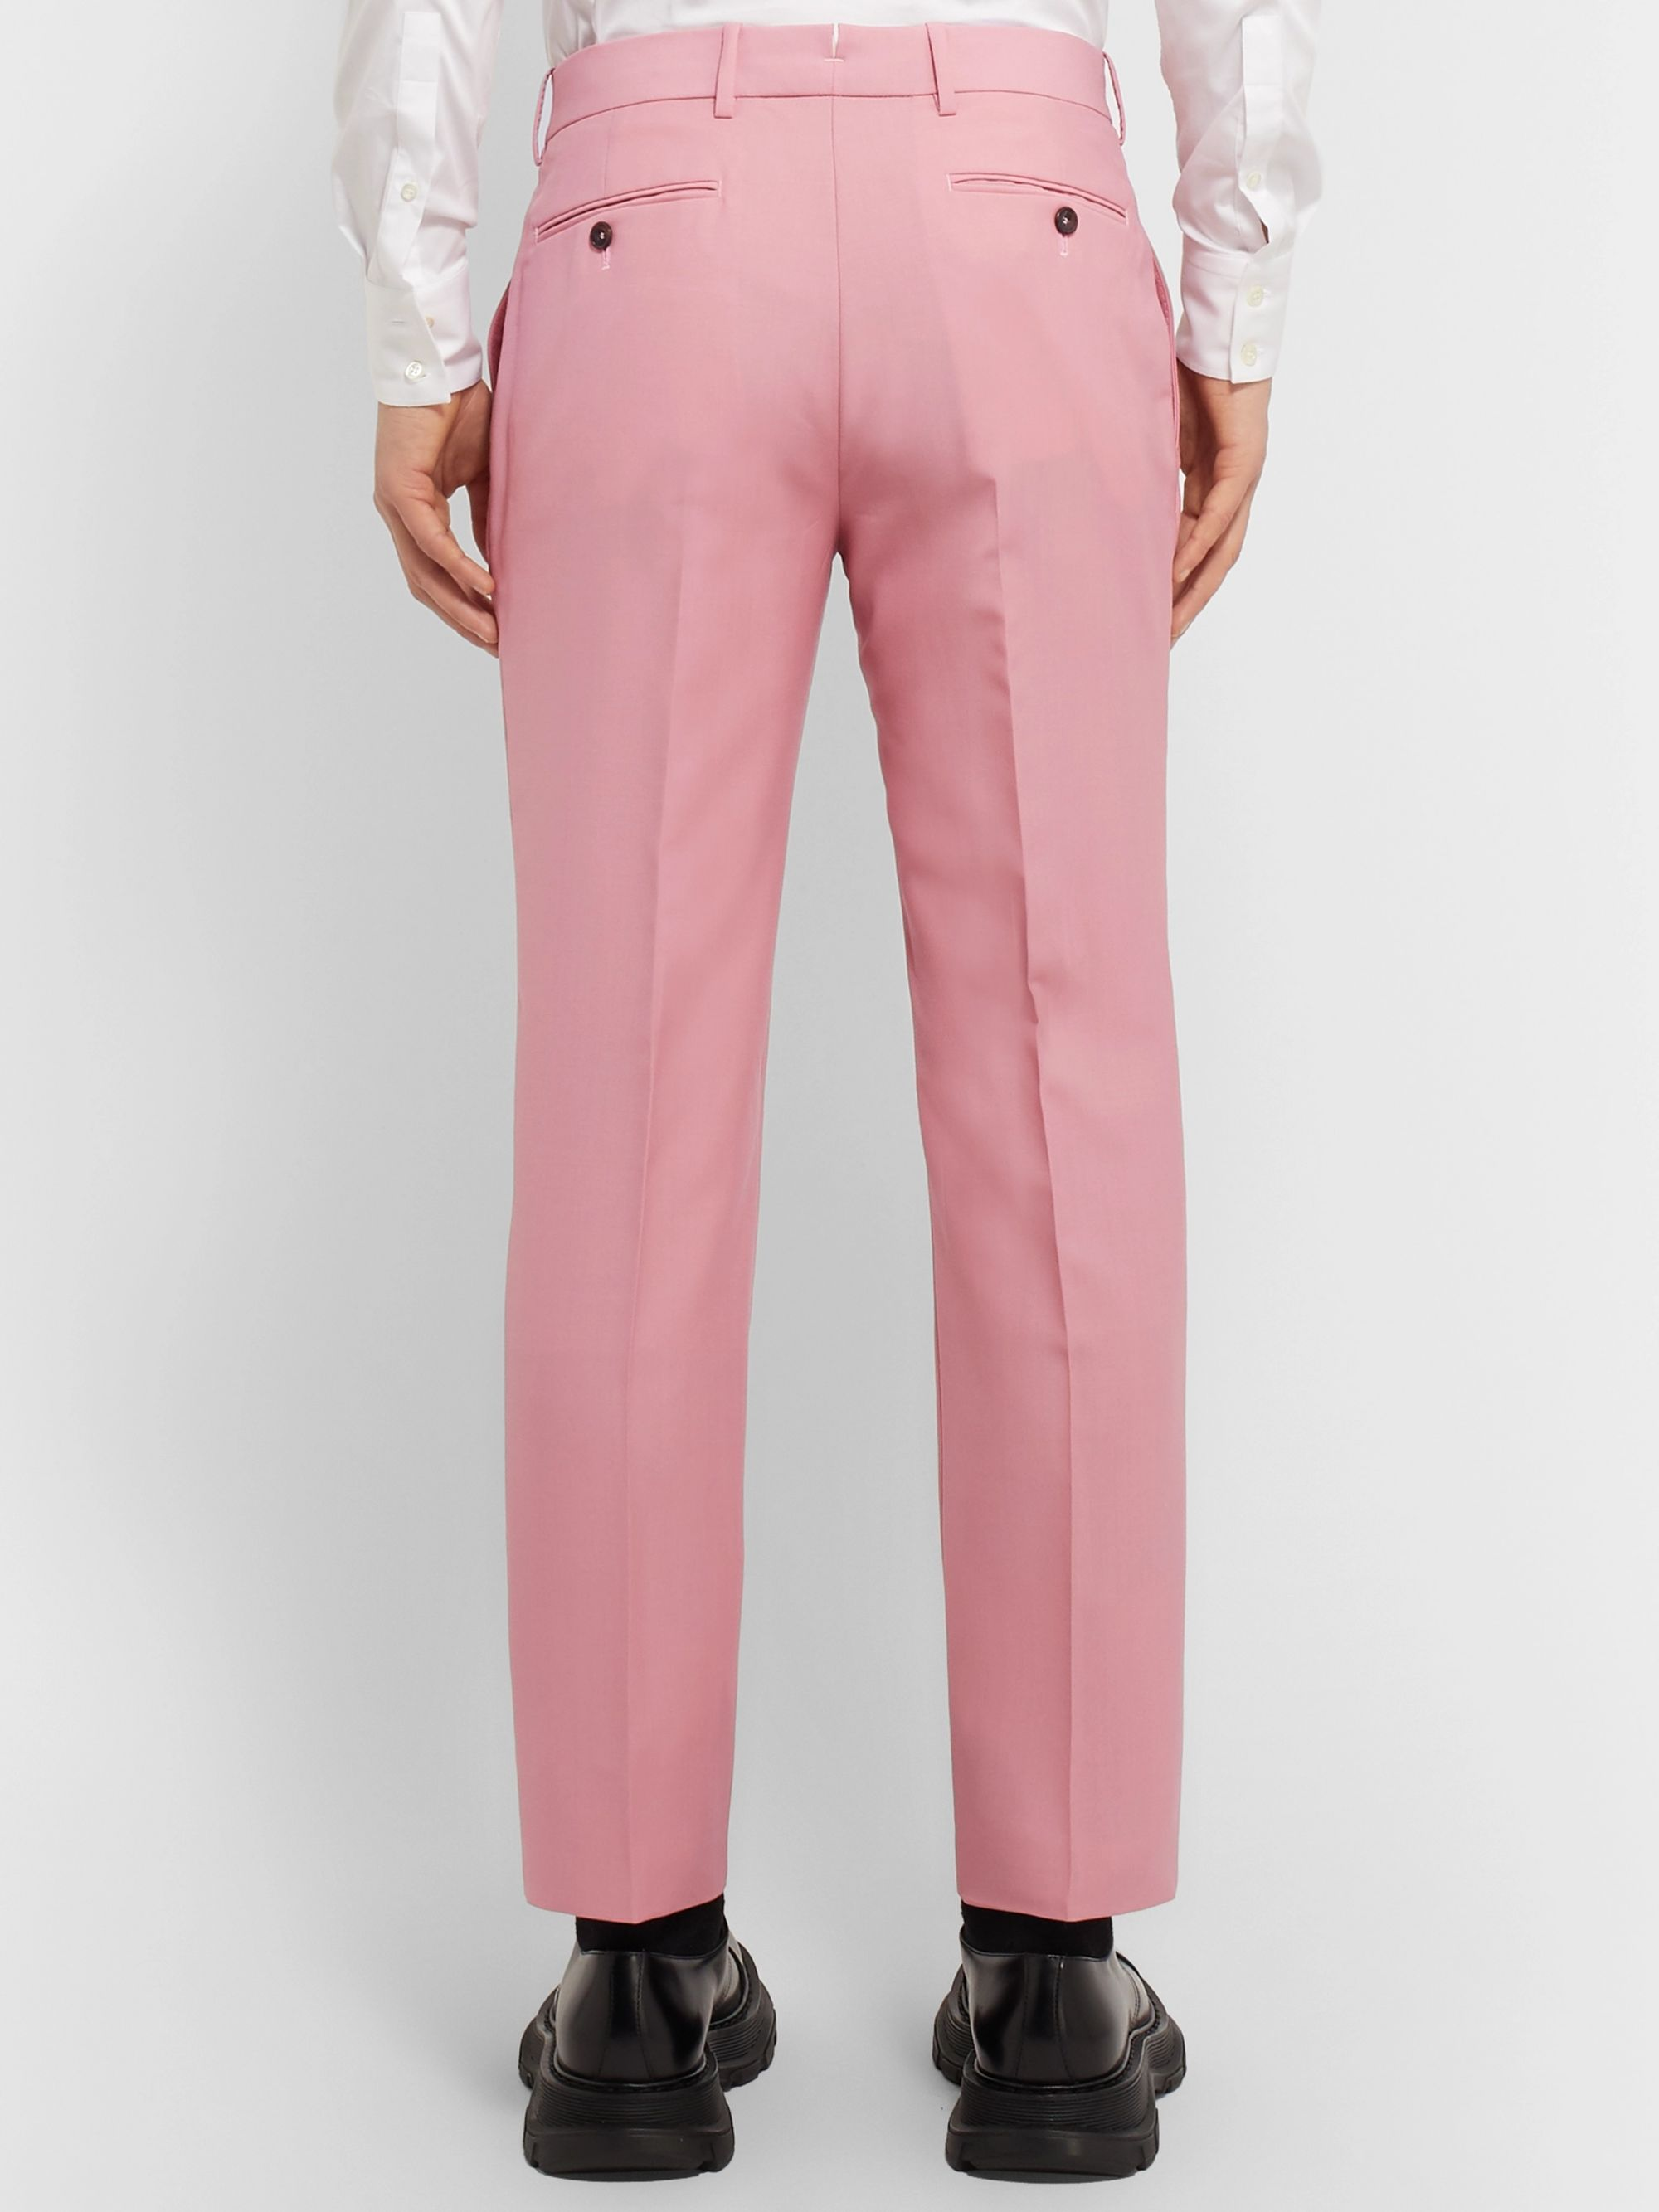 Alexander McQueen Pink Slim-Fit Wool and Mohair-Blend Suit Trousers